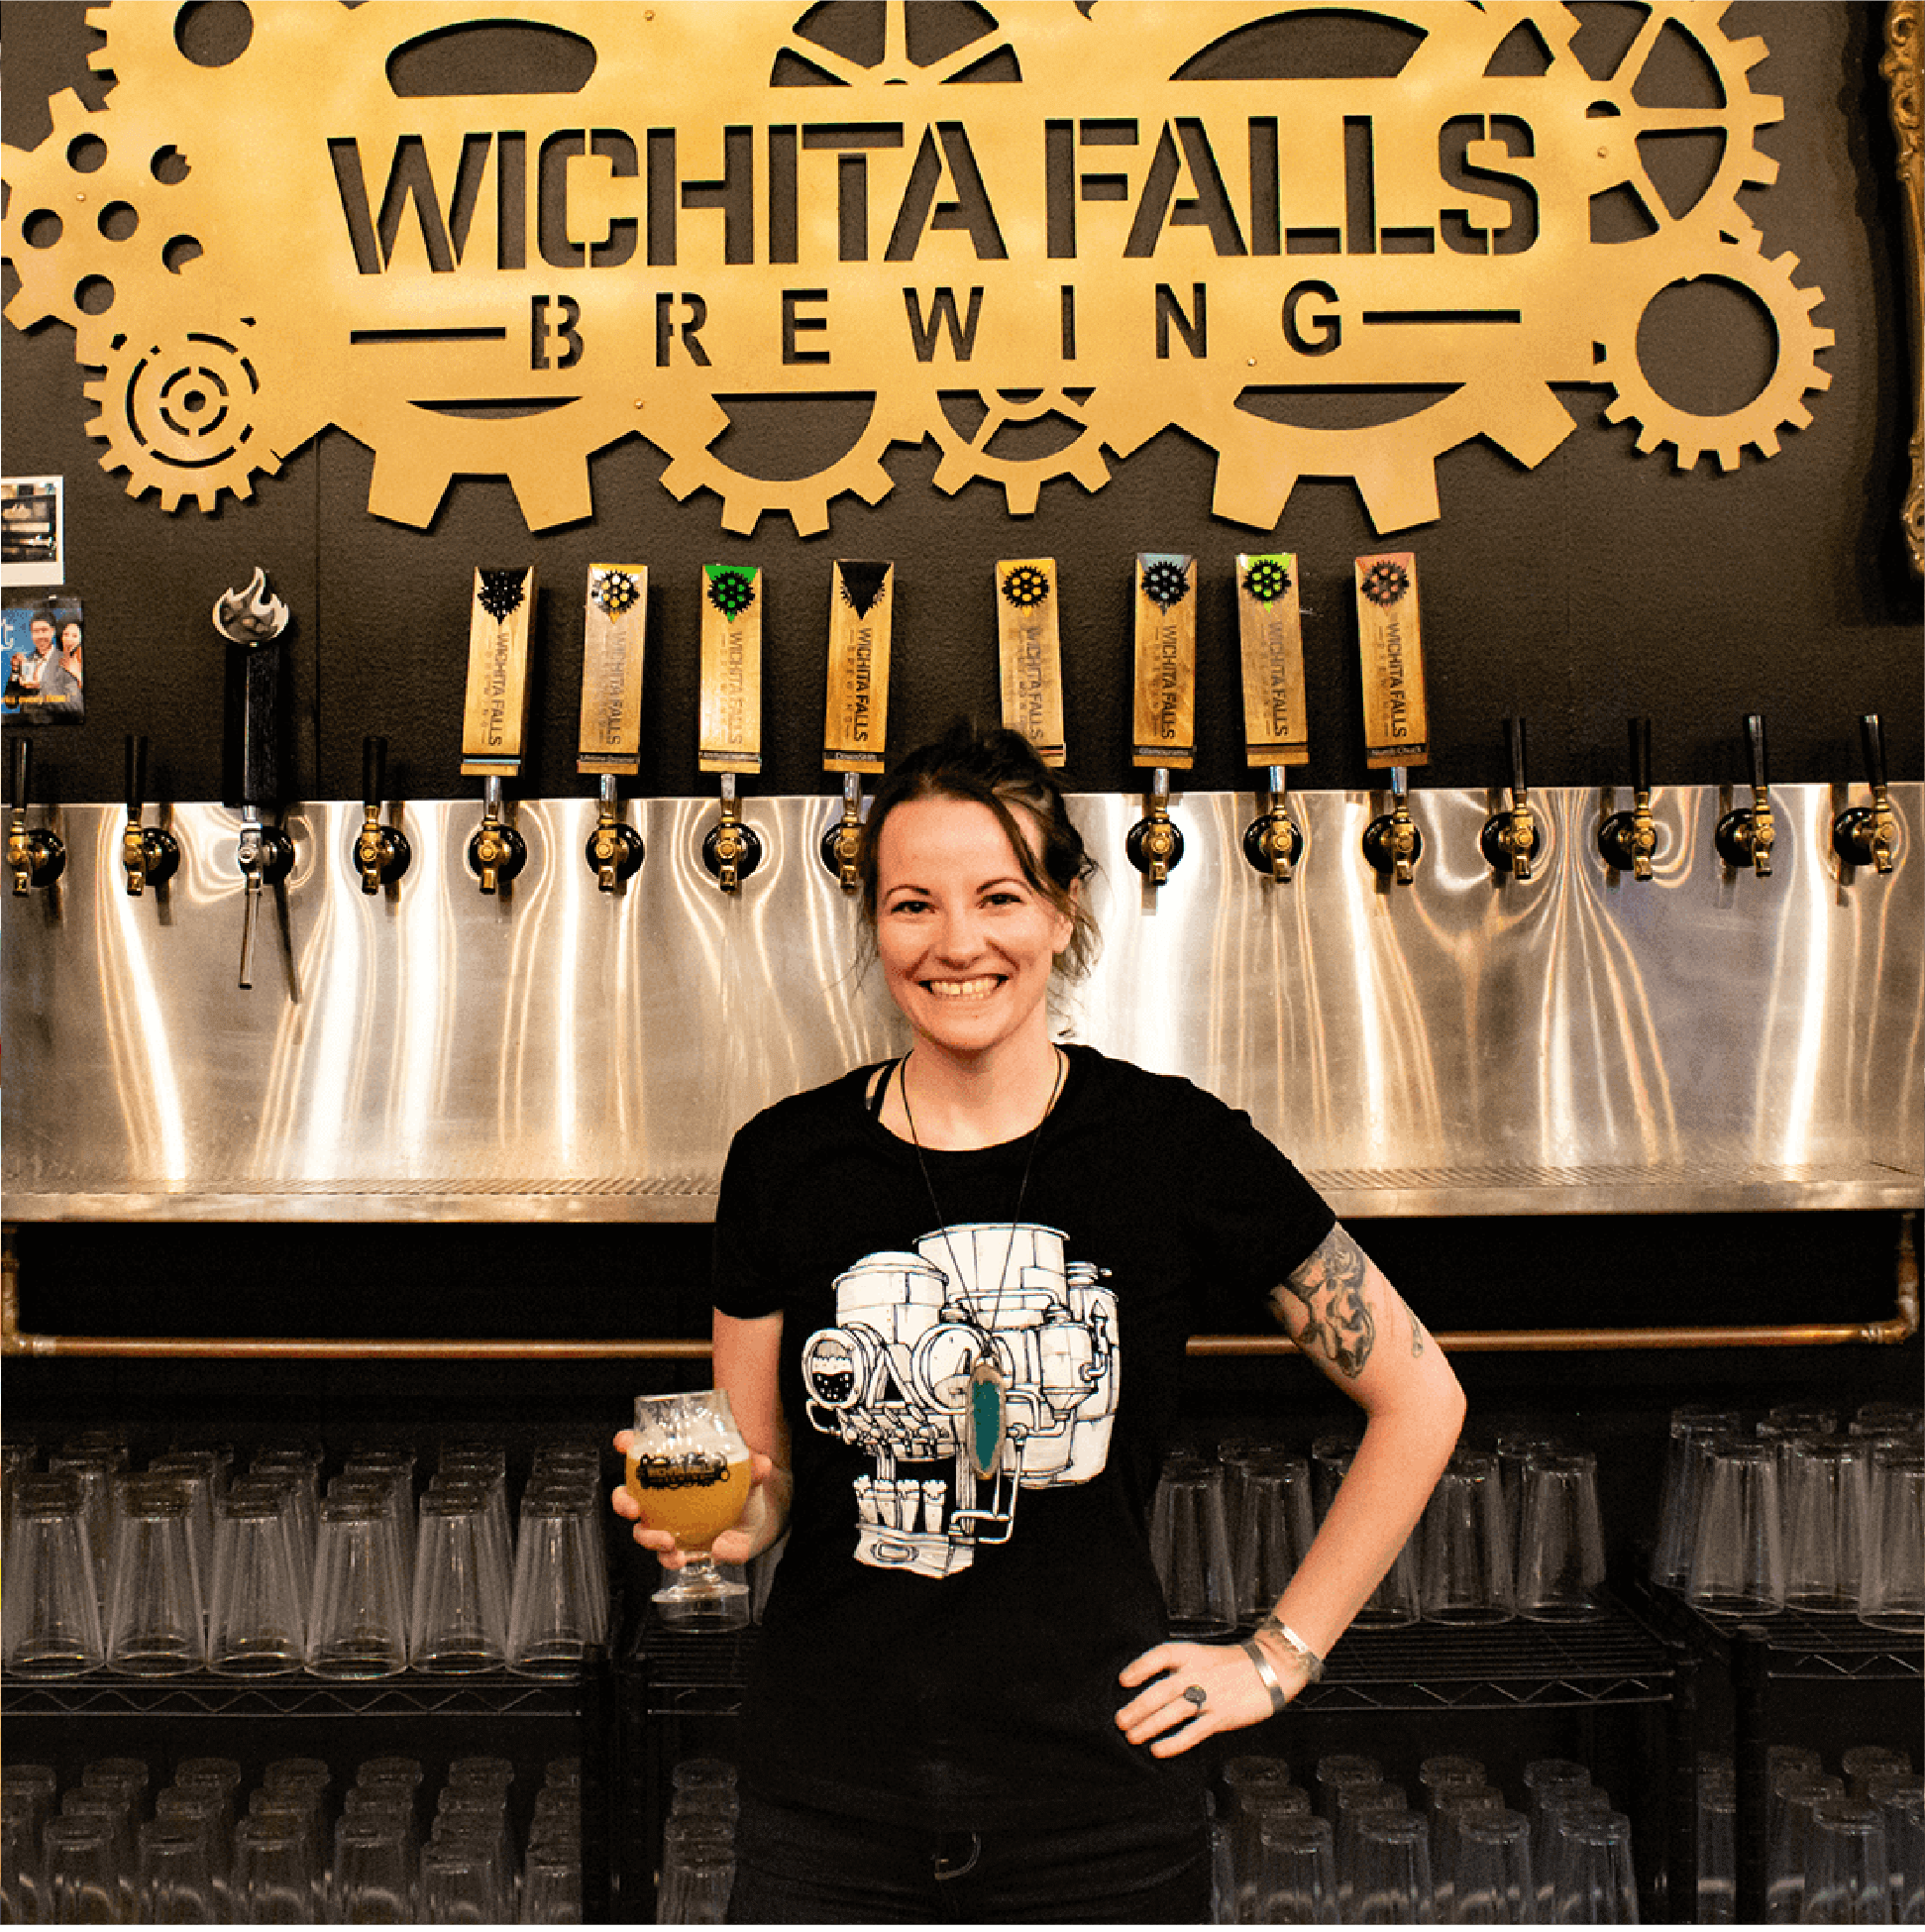 Katrina, our social-media and beer tender, stands in her favorite spot behind the bar, ready to serve you an amazingly delicious beer